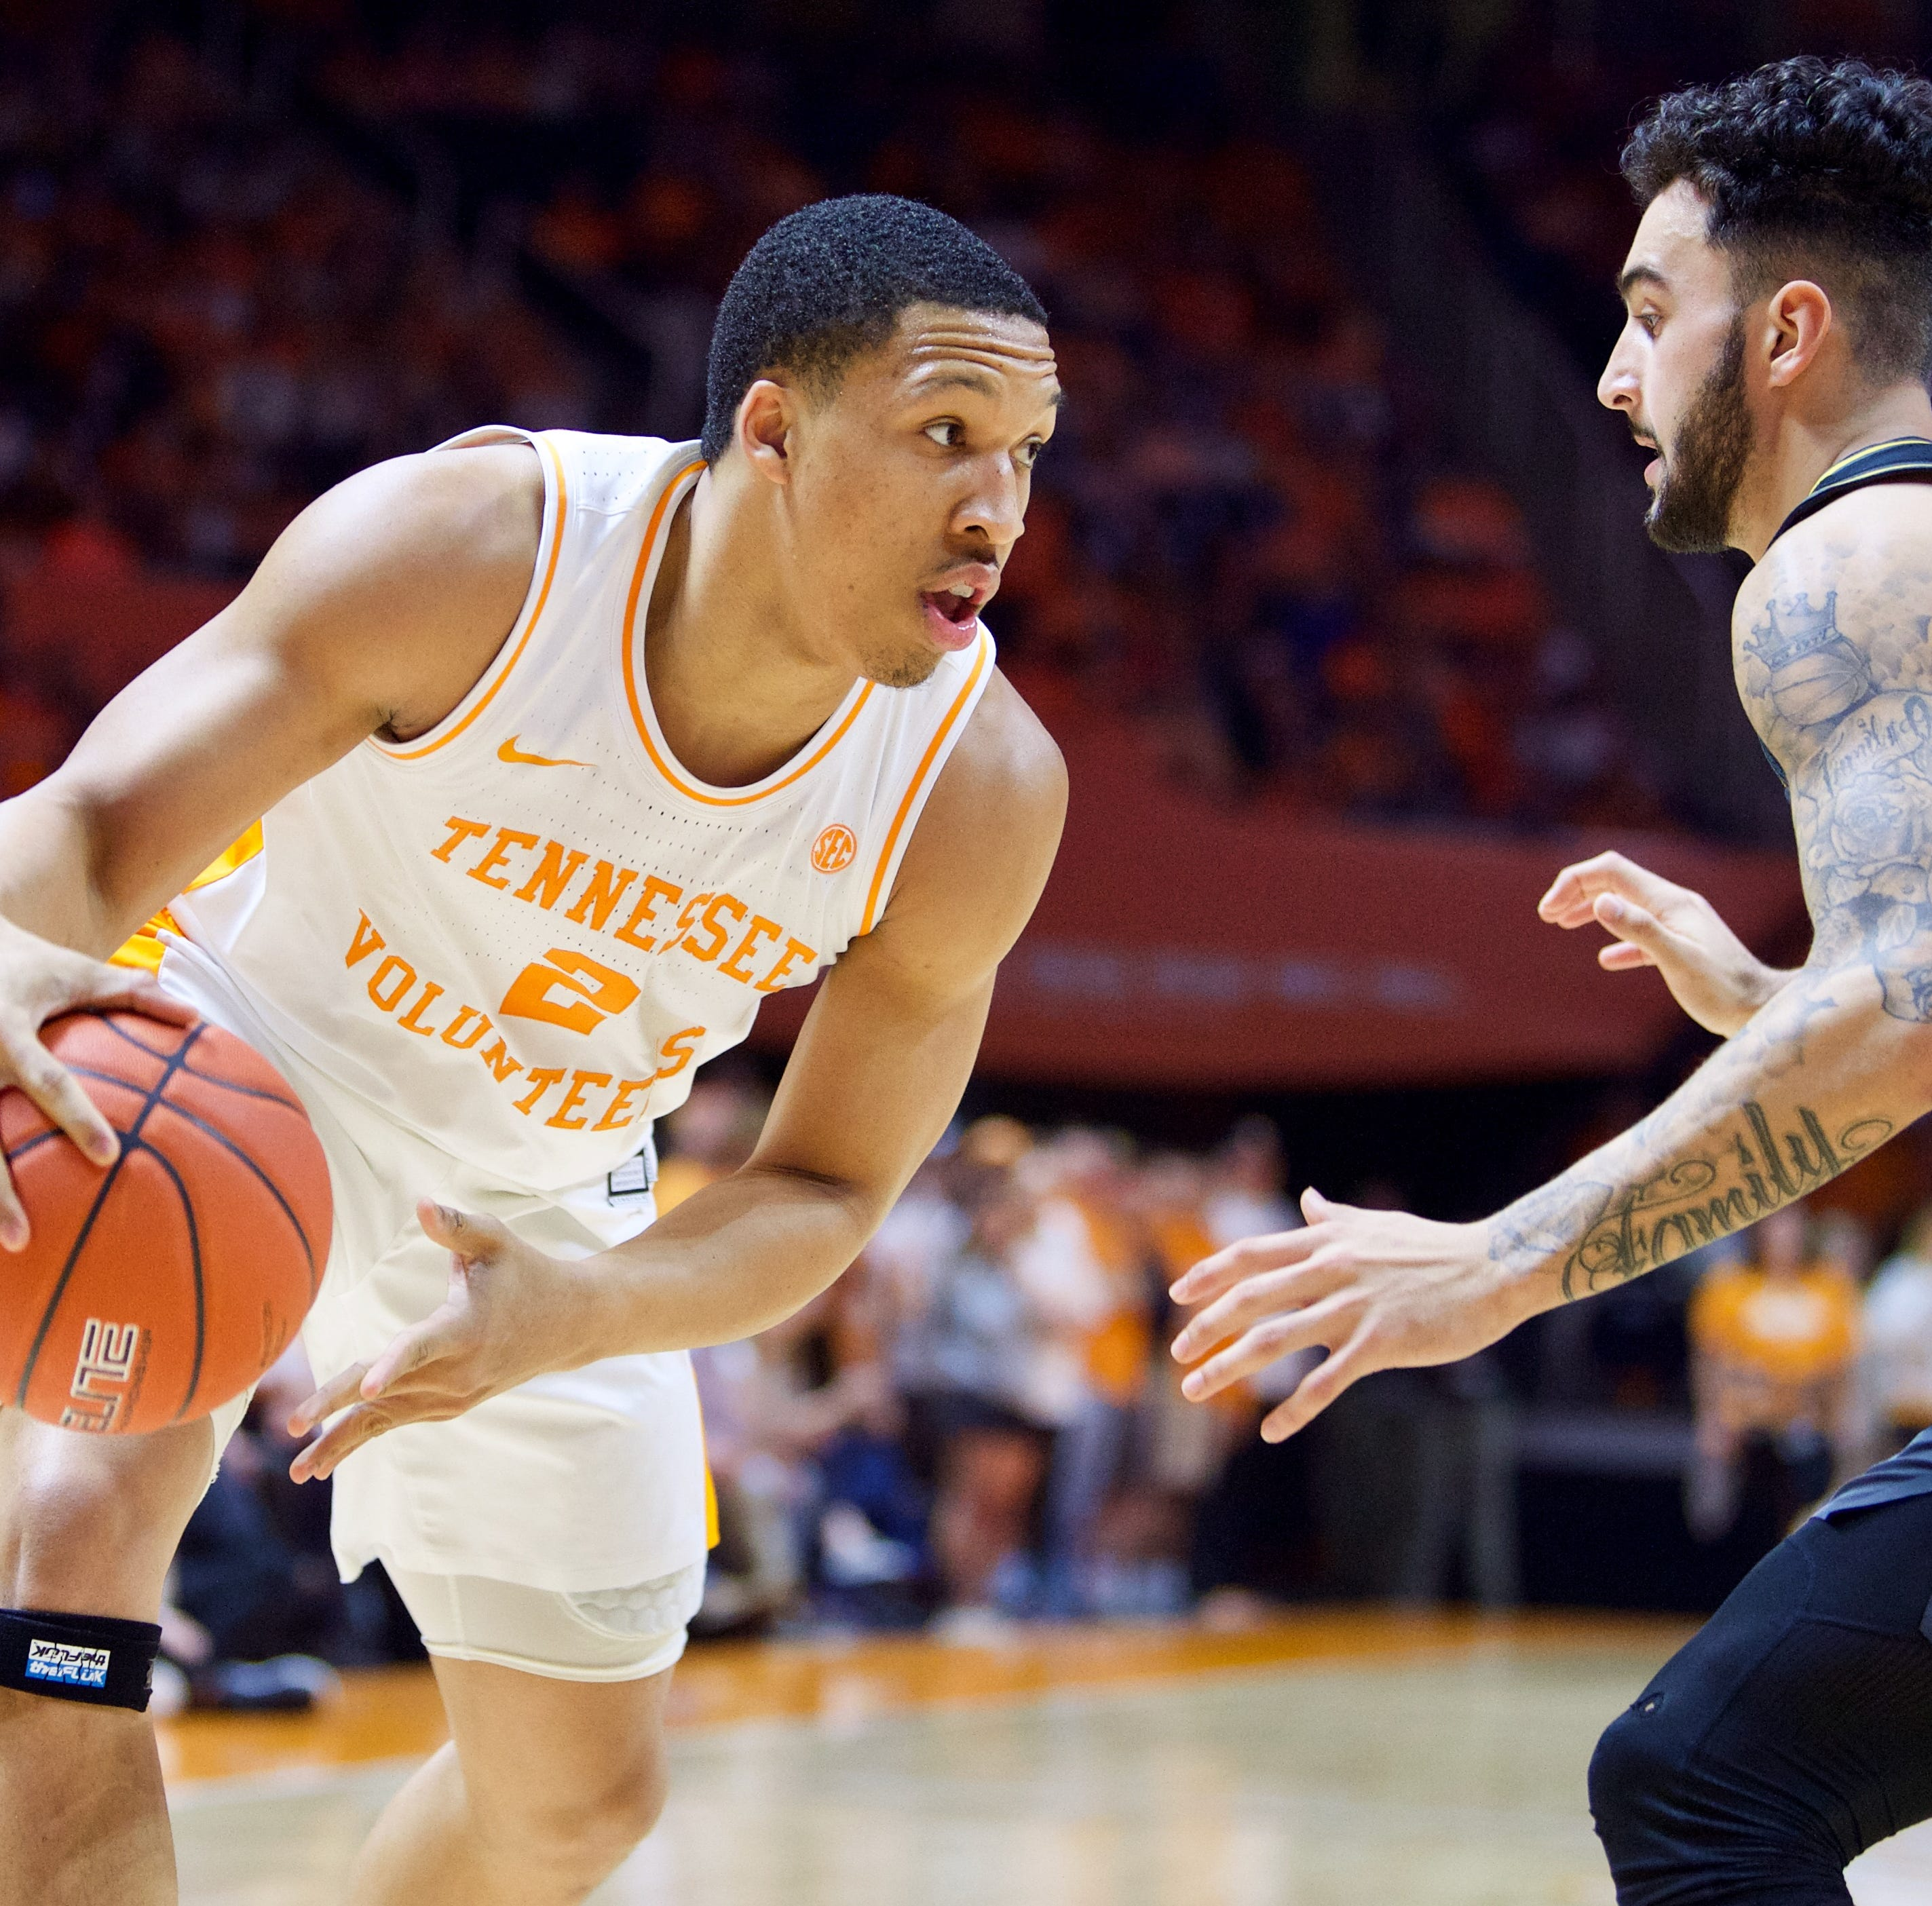 Grant Williams repeats as SEC player of the year to lead Tennessee basketball honors